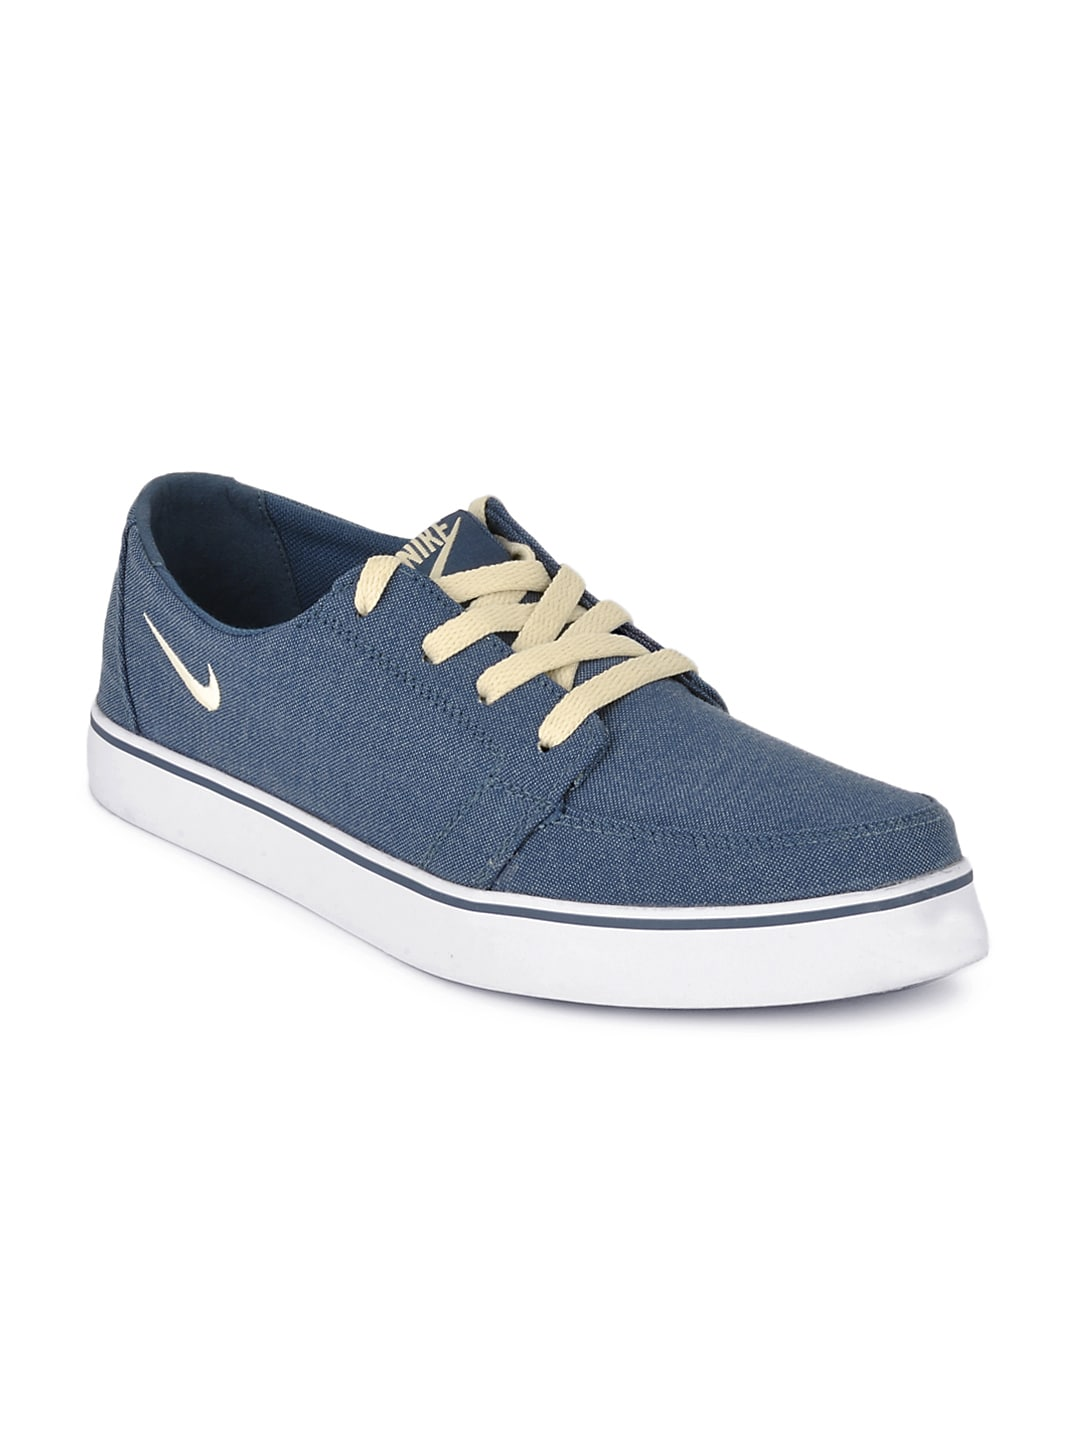 Buy Nike Men Blue Dewired Casual Shoes - Casual Shoes for ...